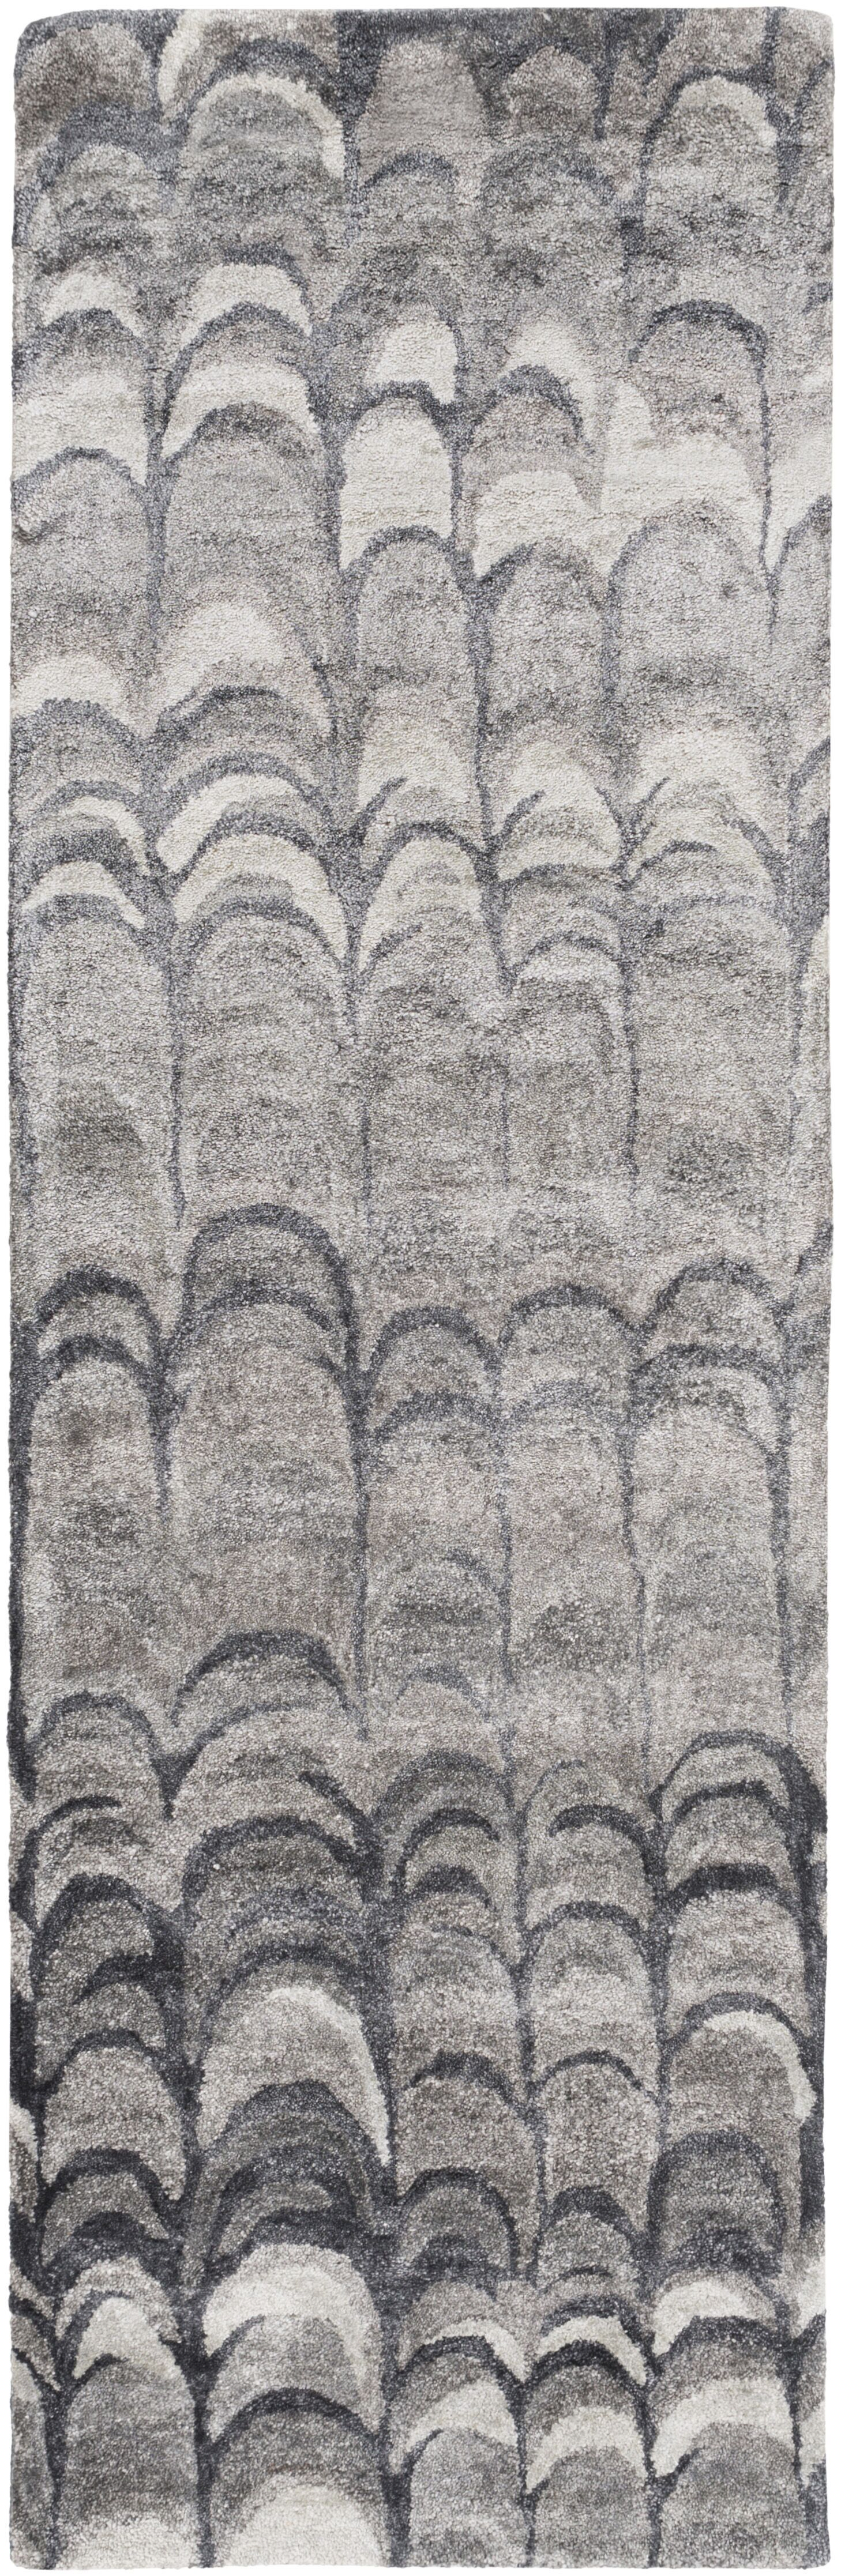 Harbor View Gray Area Rug Rug Size: Runner 2'6